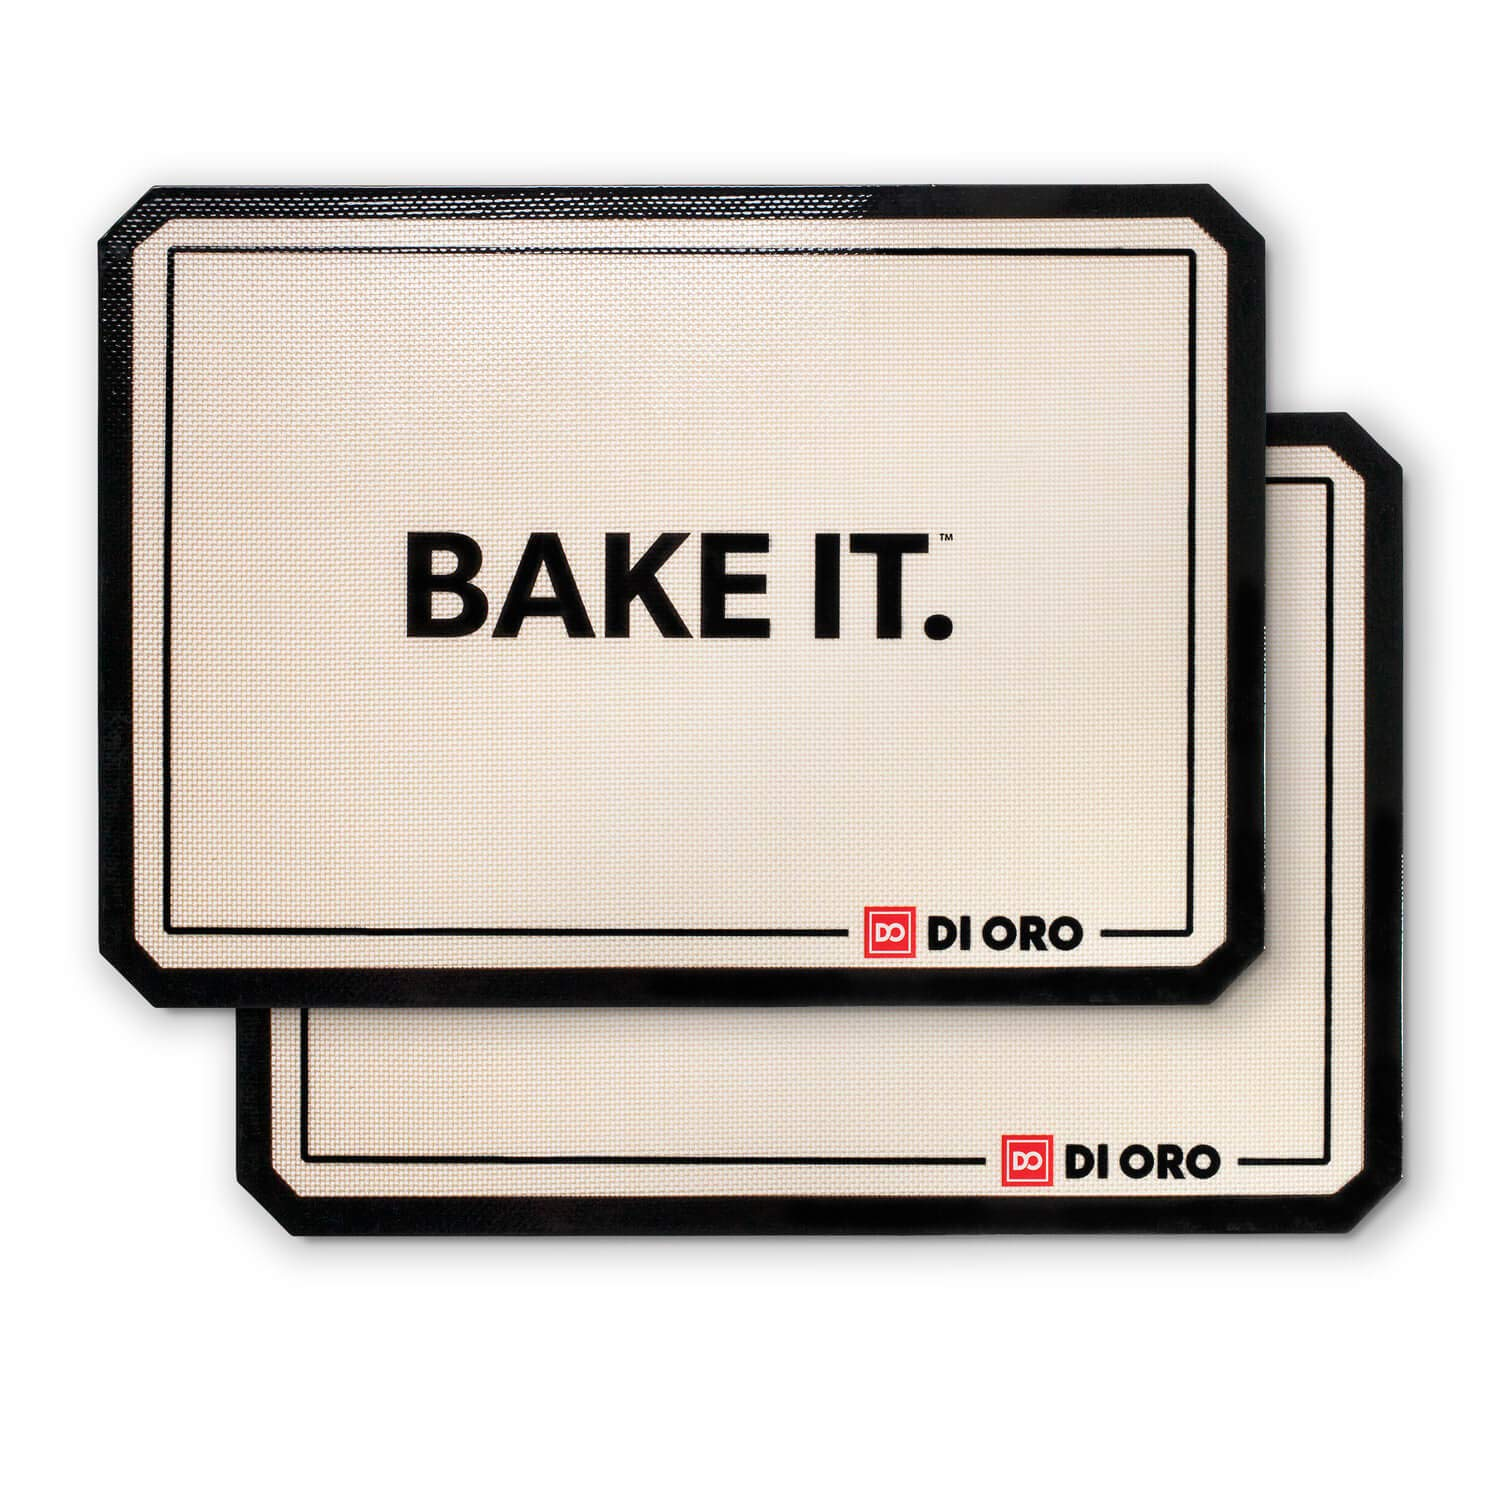 "DI ORO - Pro Silicone Baking Mat - Nonstick Silicone Sheets - 480° Heat Resistant - 16 1/2""× 11 5/8"" Half Sheet - 1.0mm Thick Pro Grade BPA Free Silicone - A Lifetime of Joyful Cooking - 2-Pack"